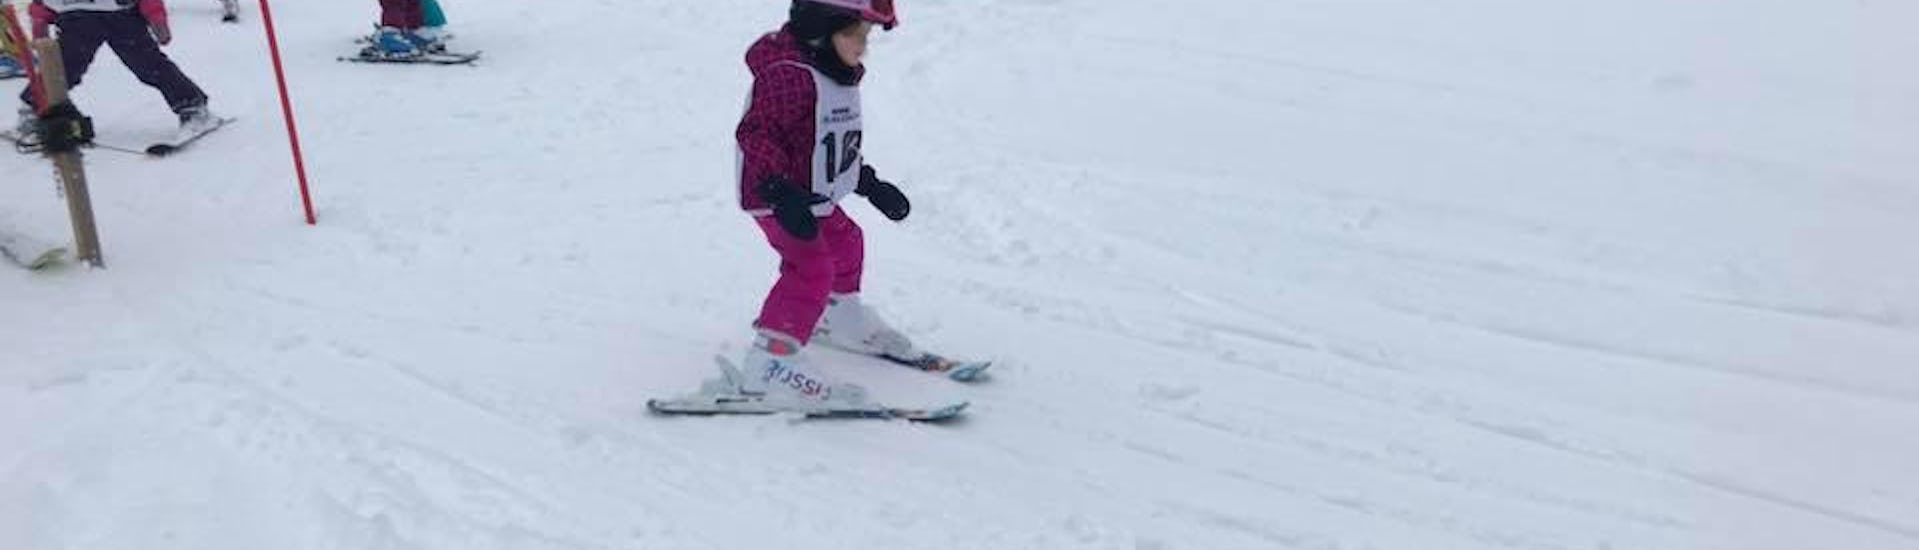 "Ski Lessons ""Miniclub"" (3-6 years) - All Levels"